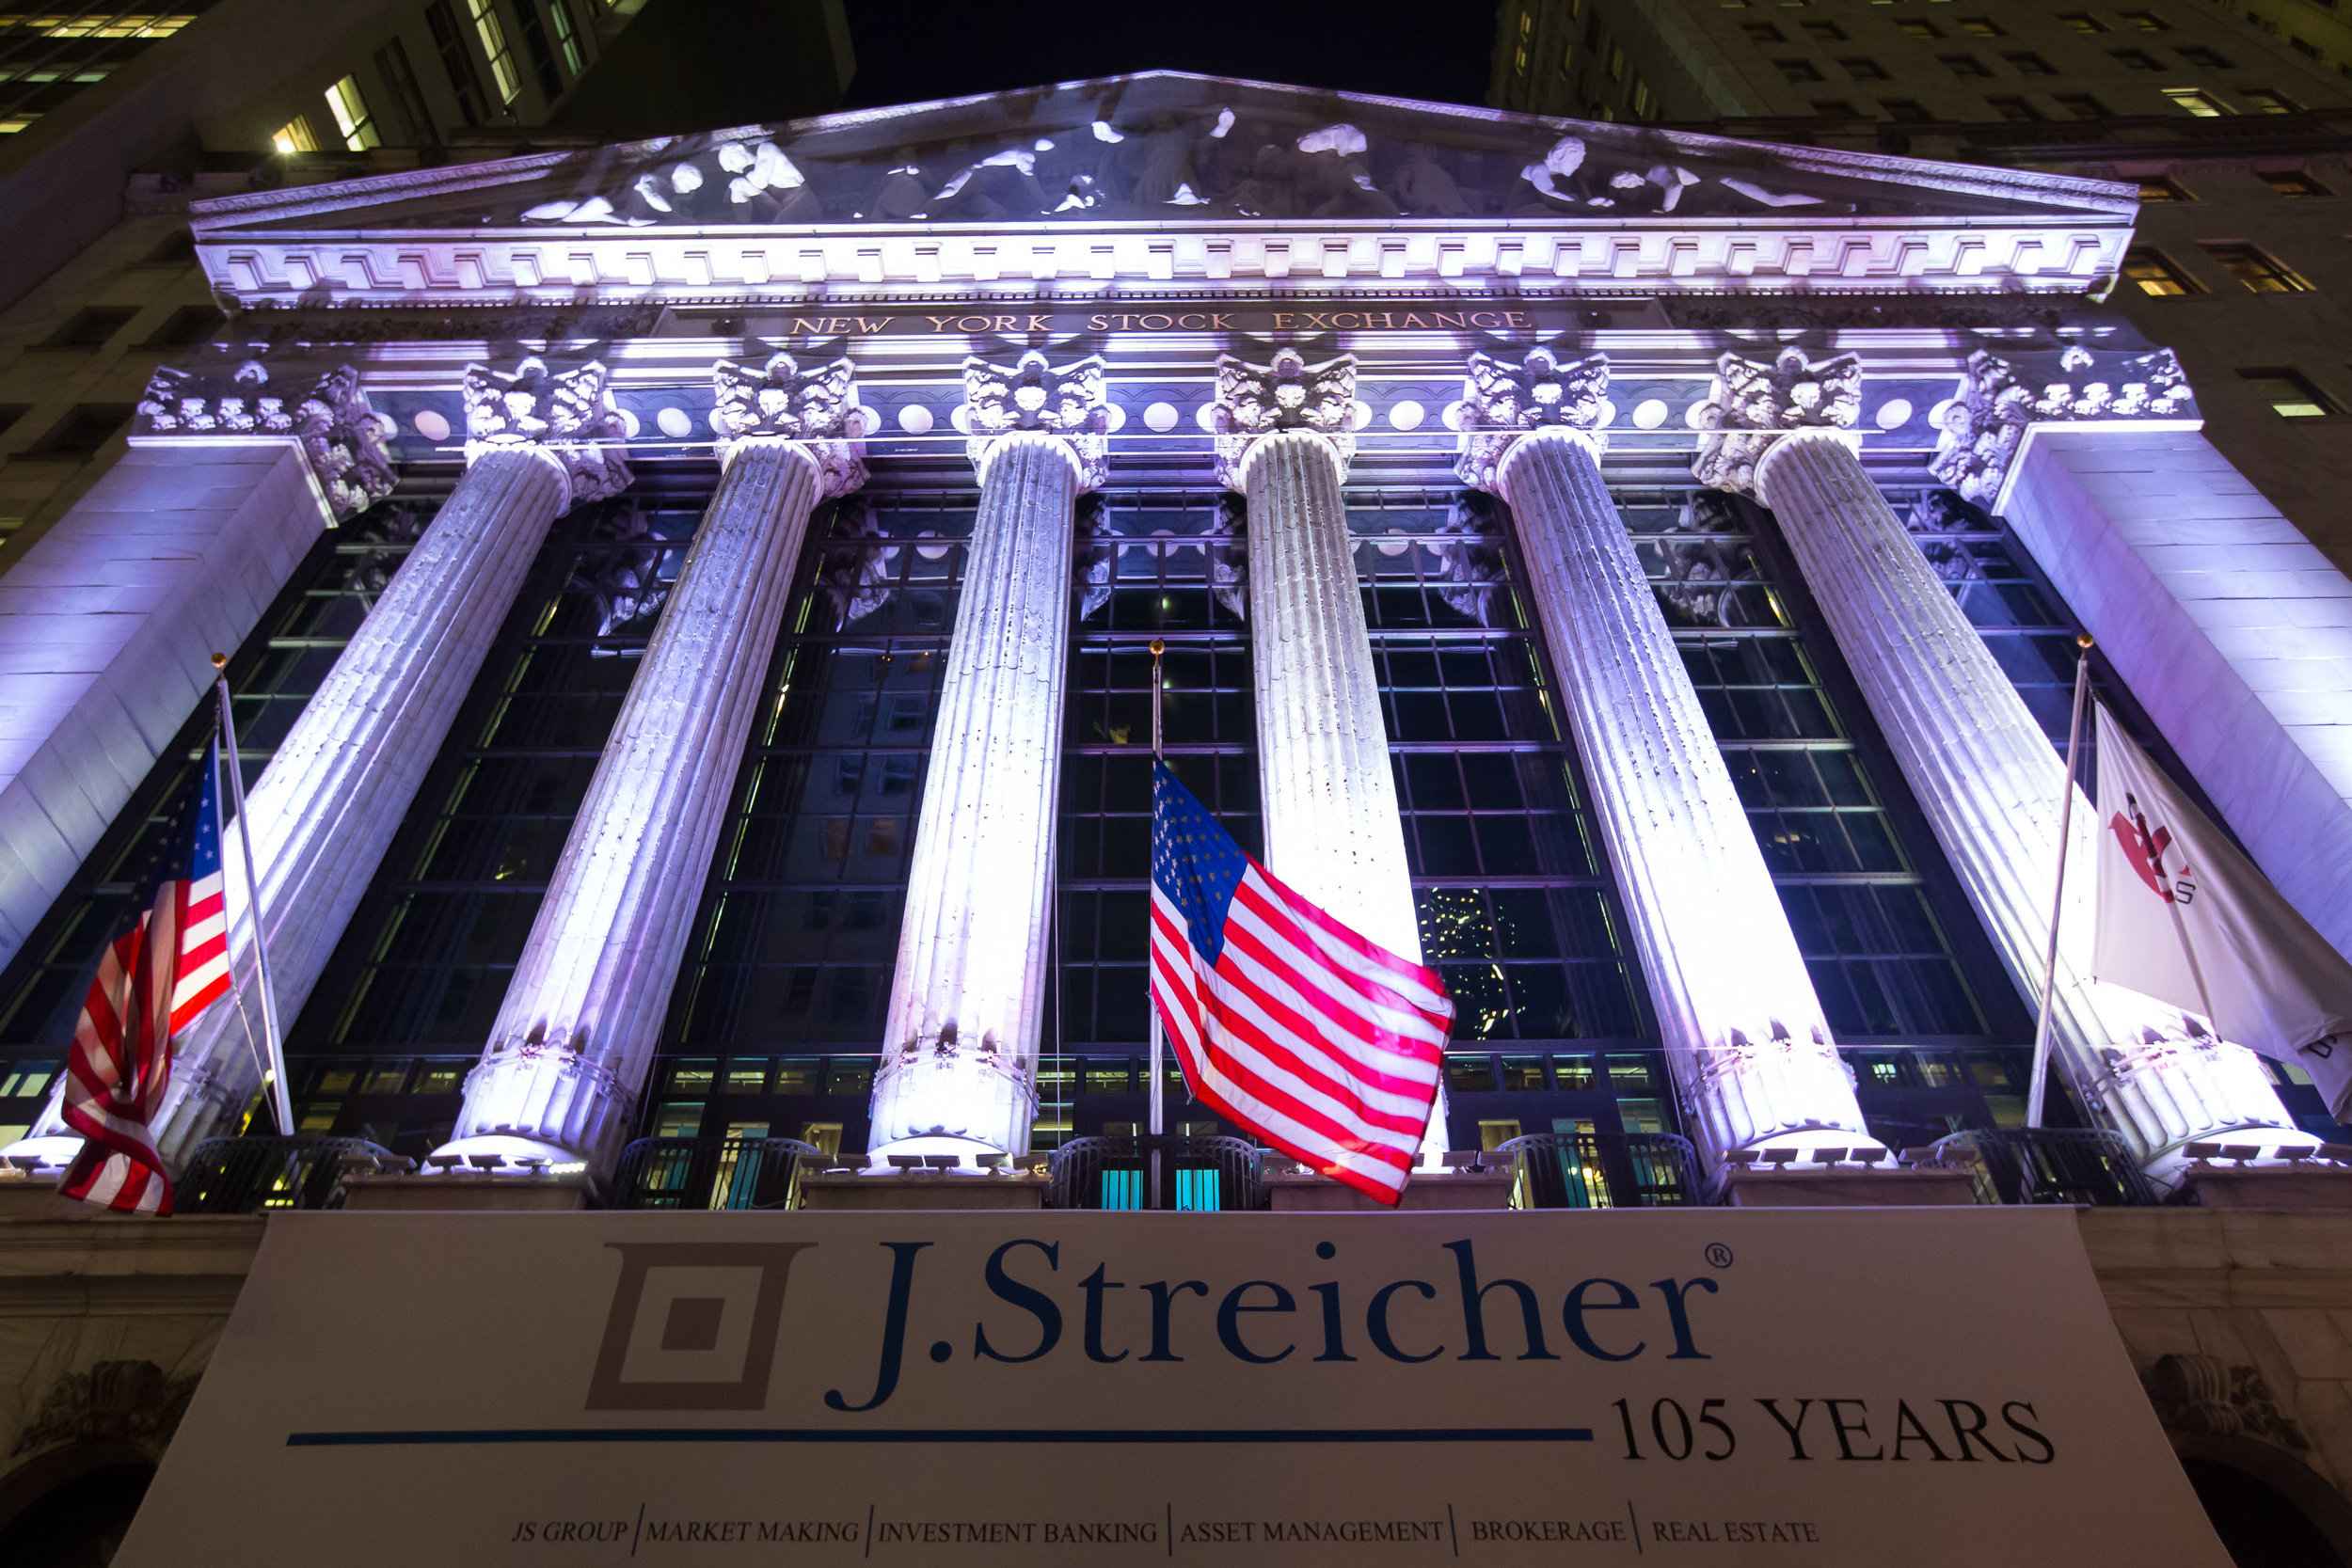 J. Streicher at NYSE